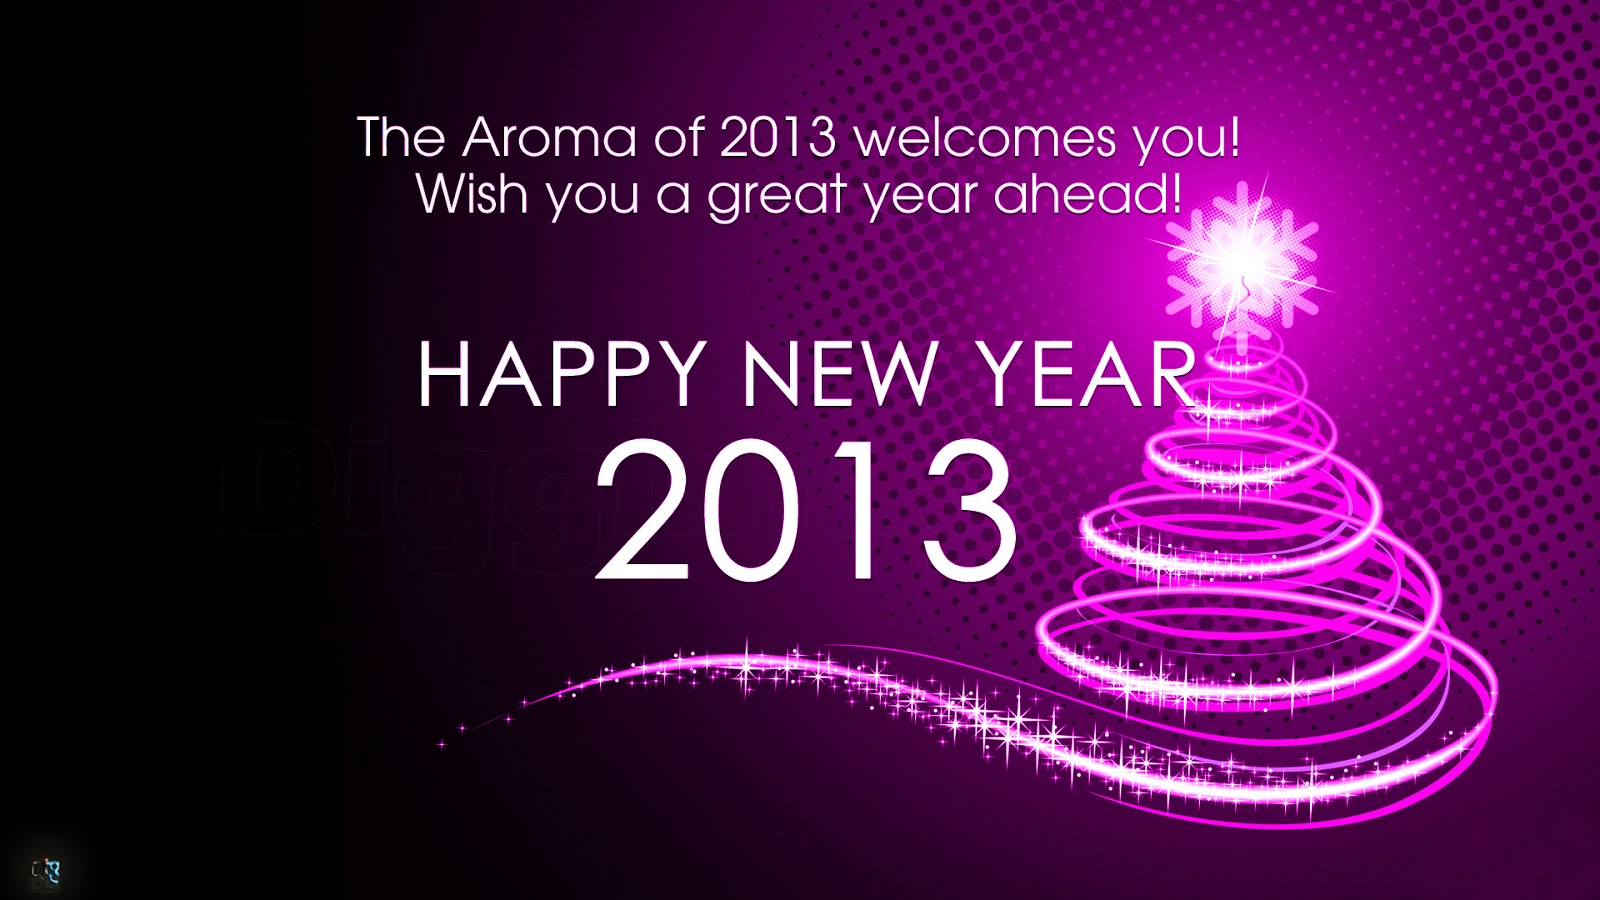 Happy New Year 2013 Tamil Wishes Sms Greetings And Wallpapers. 1600 x 900.Greeting For New Year In Hindi